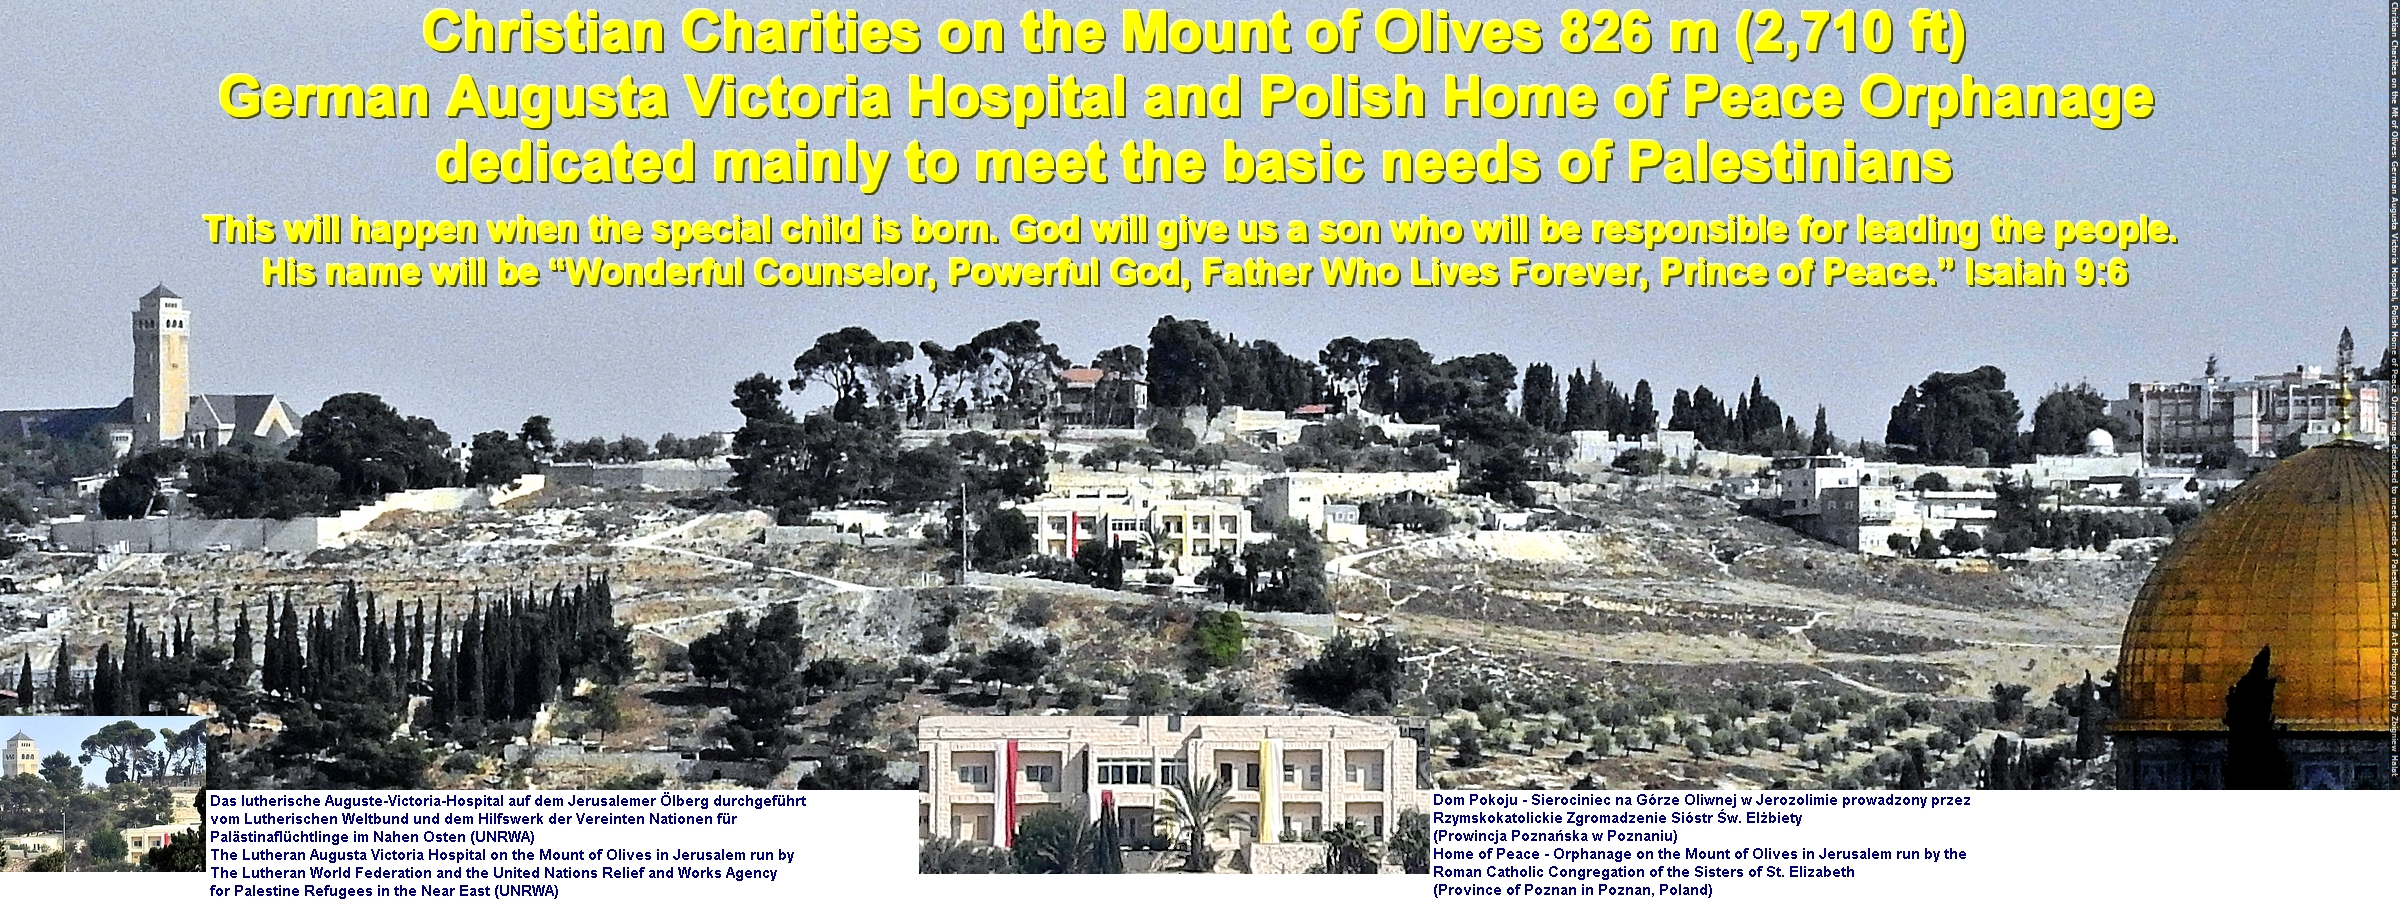 Christian Charities on the Mount of Olives 826 m (2,710 ft) German Augusta Victoria Hospital and Polish Home of Peace Orphanage dedicated mainly to meet the basic needs of Palestinians. Fine Art Photography by Zbigniew Halat Das lutherische Auguste-Victoria-Hospital auf dem Jerusalemer Ölberg durchgeführt vom Lutherischen Weltbund und dem Hilfswerk der Vereinten Nationen für Palästinaflüchtlinge im Nahen Osten (UNRWA). The Lutheran Augusta Victoria Hospital on the Mount of Olives in Jerusalem run by The Lutheran World Federation and the United Nations Relief and Works Agency for Palestine Refugees in the Near East (UNRWA). Dom Pokoju - Sierociniec na Górze Oliwnej w Jerozolimie prowadzony przez Rzymskokatolickie Zgromadzenie Sióstr Św. Elżbiety (Prowincja Poznańska w Poznaniu). Home of Peace - Orphanage on the Mount of Olives in Jerusalem run by the Roman Catholic Congregation of the Sisters of St. Elizabeth (Province of Poznan in Poznan, Poland)